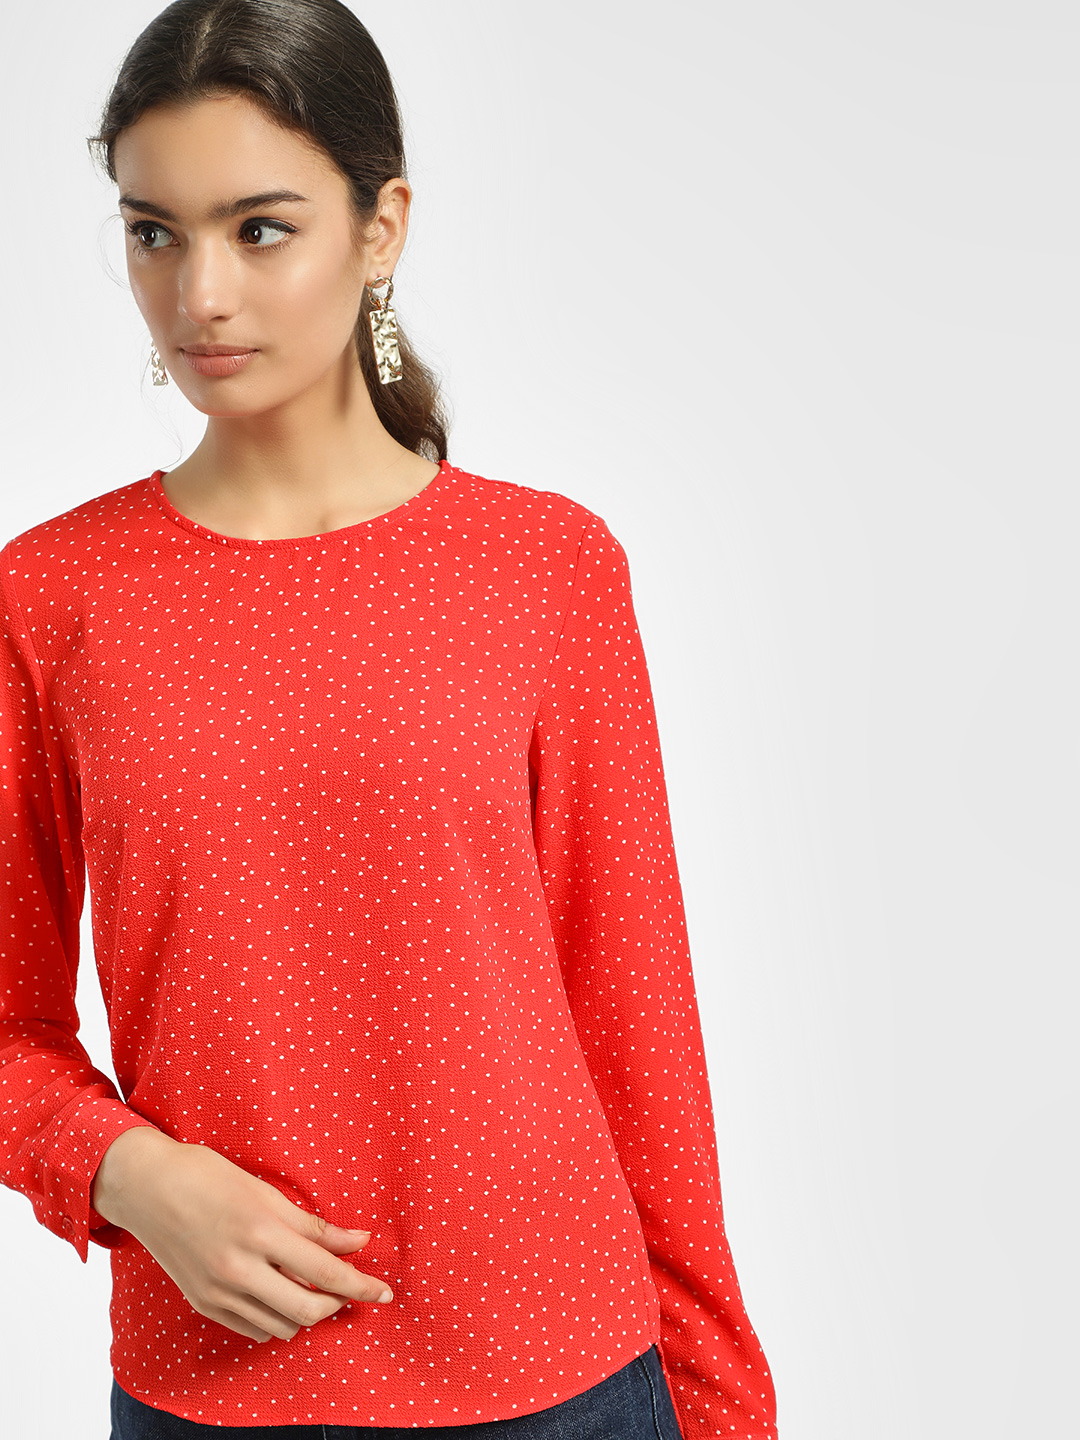 New Look RED PATTERN Polka Dot Print Blouse 1